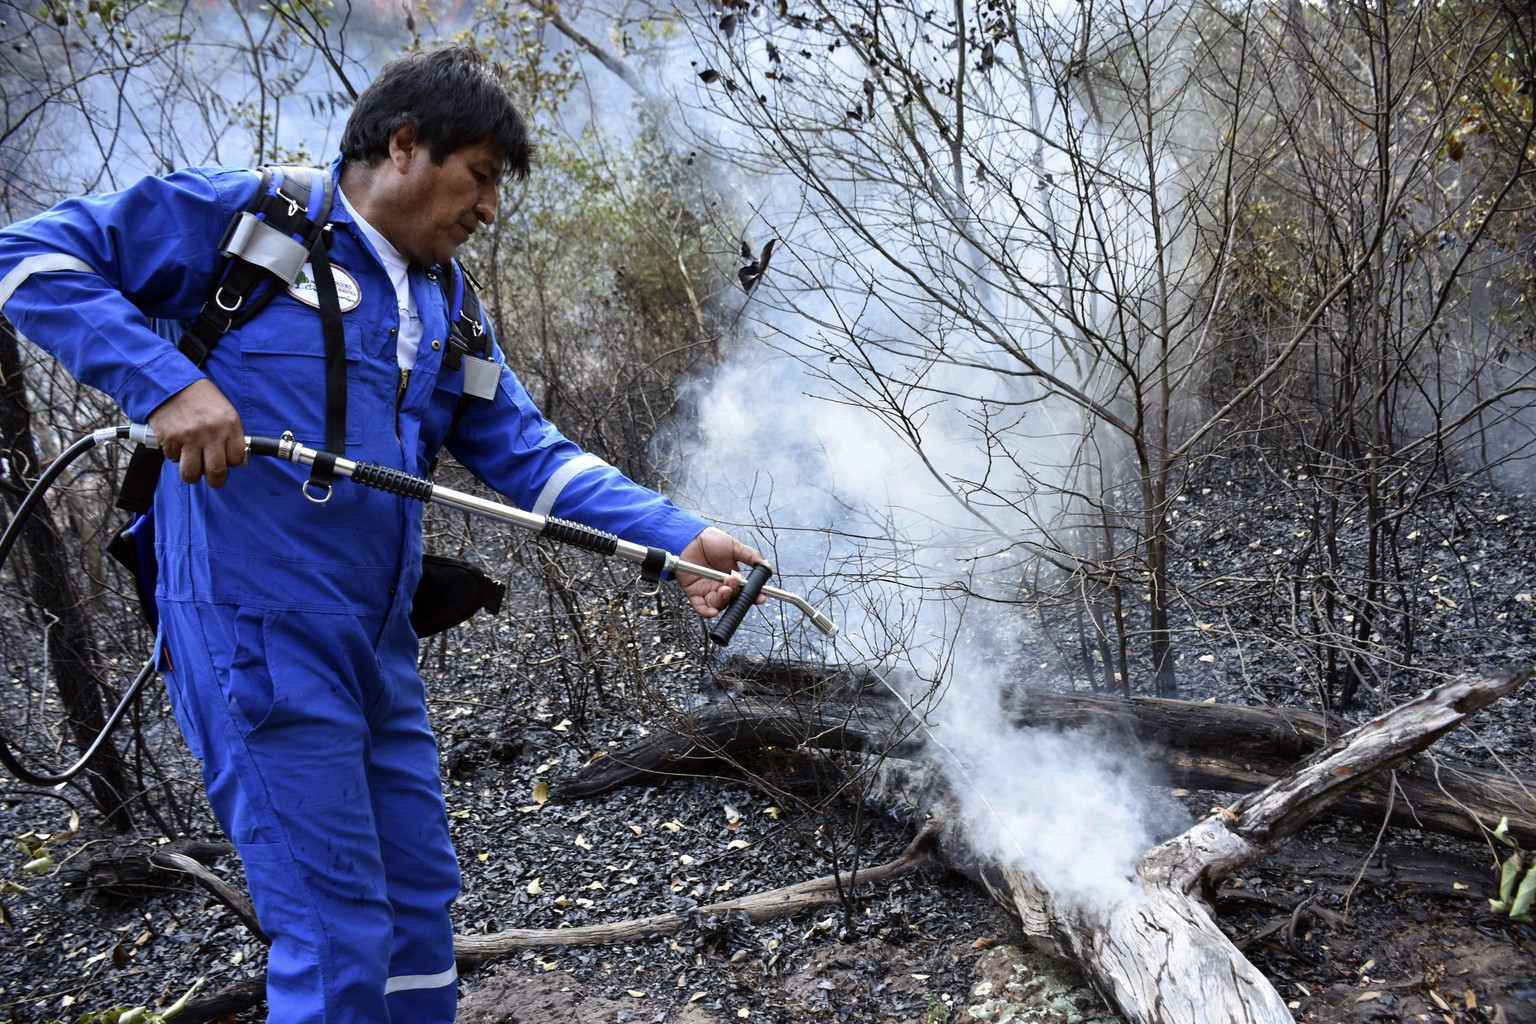 In this photo courtesy of Bolivia's Communication Ministry press office, Bolivian President Evo Morales sprays water at a fire on the outskirts of Robore, Bolivia, Tuesday, Aug. 27, 2019. Morales, who has been under criticism for an allegedly slow response to the fires, issued a decree in July allowing controlled burns and clearing of lands, after granting amnesty last year to people caught burning fields illegally. (Raul Martinez/Bolivia's Communication Ministry press office via AP)